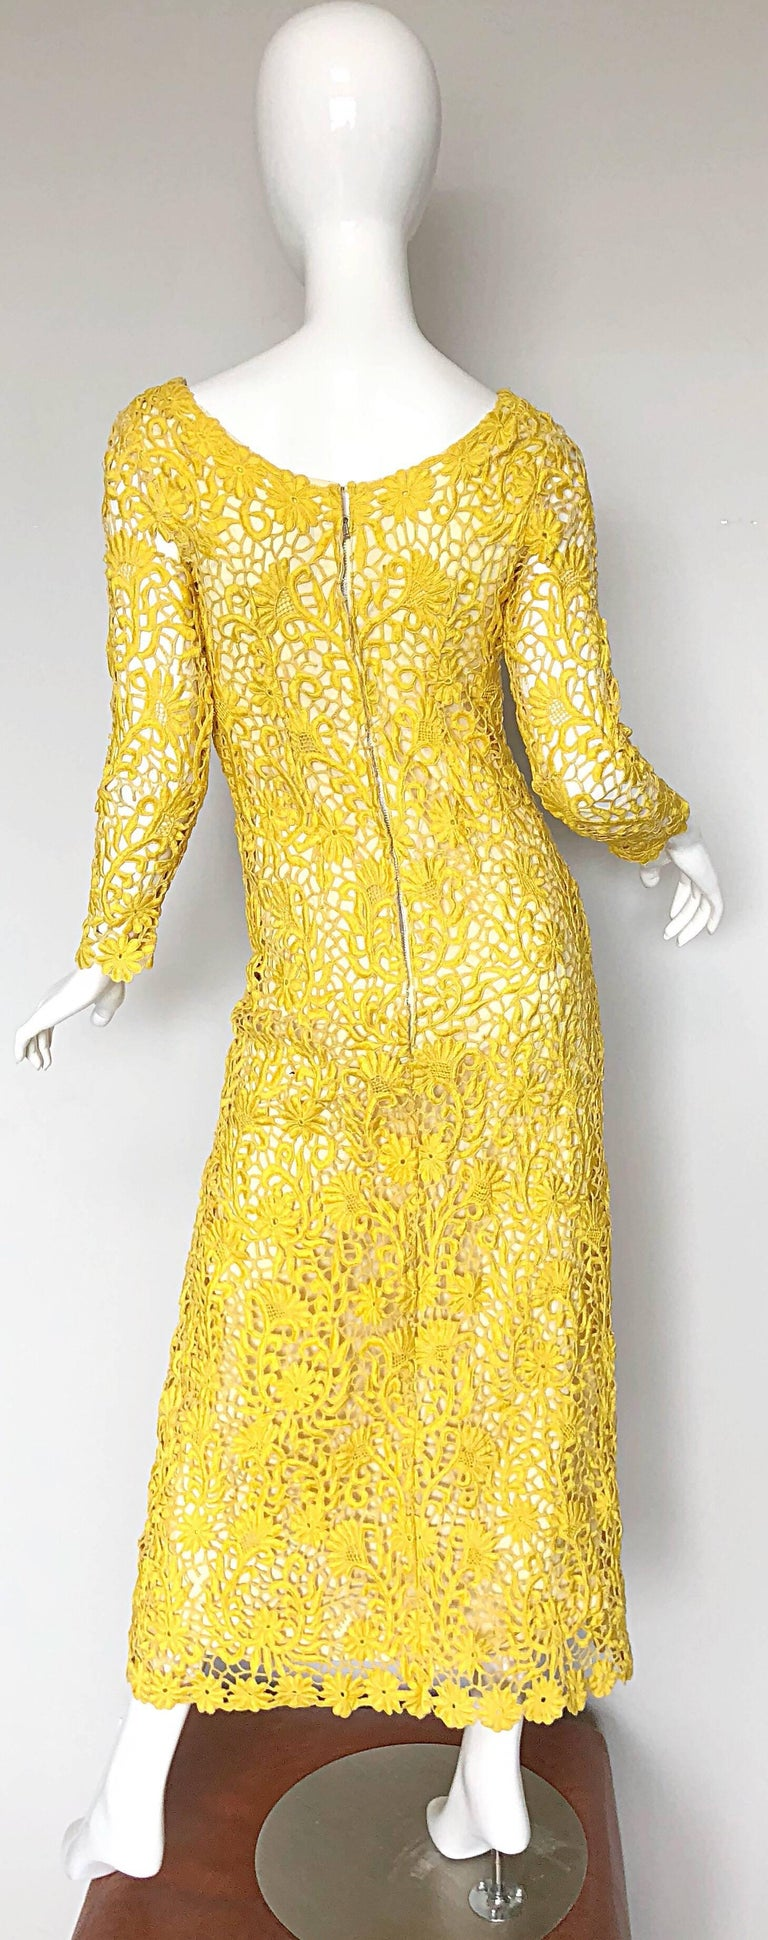 f1eb1856bfe Joe Salazar Rare 1960s Canary Yellow Hand Crochet Vintage 60s Maxi Dress  Gown For Sale 1